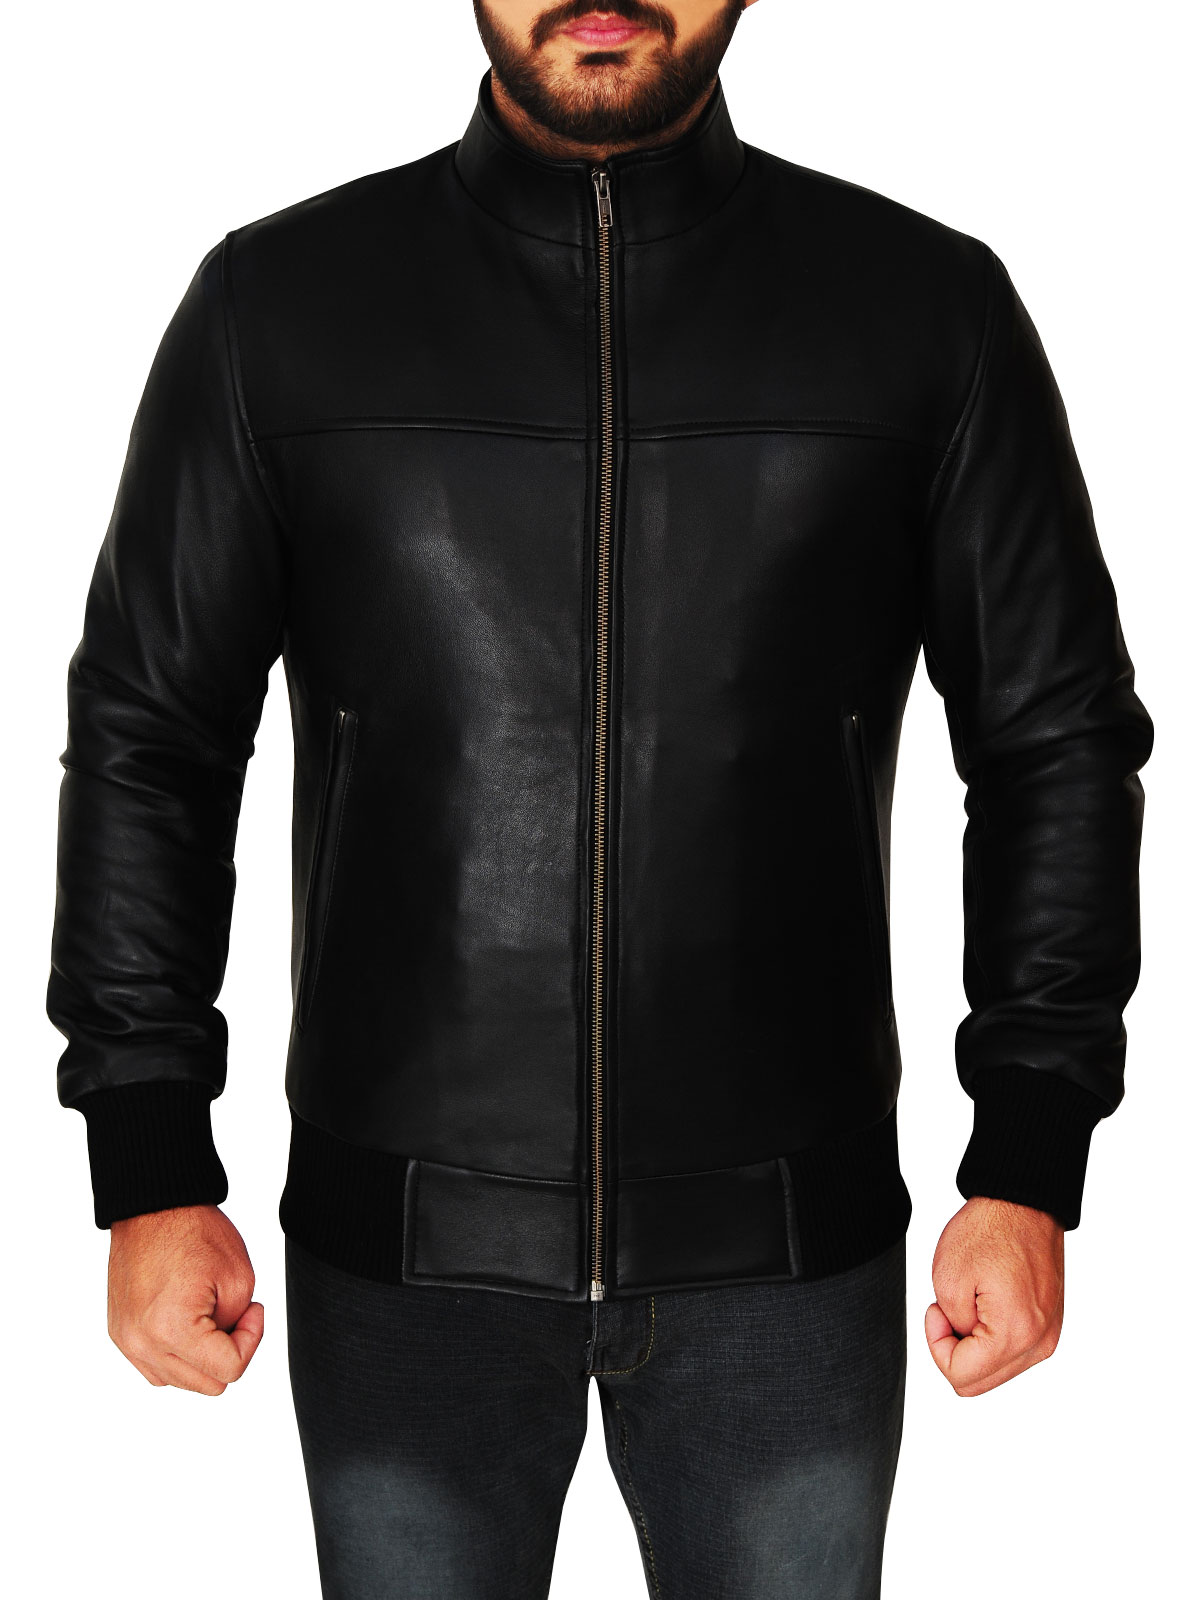 Damon-Salvator-Black-Jacket-F-C